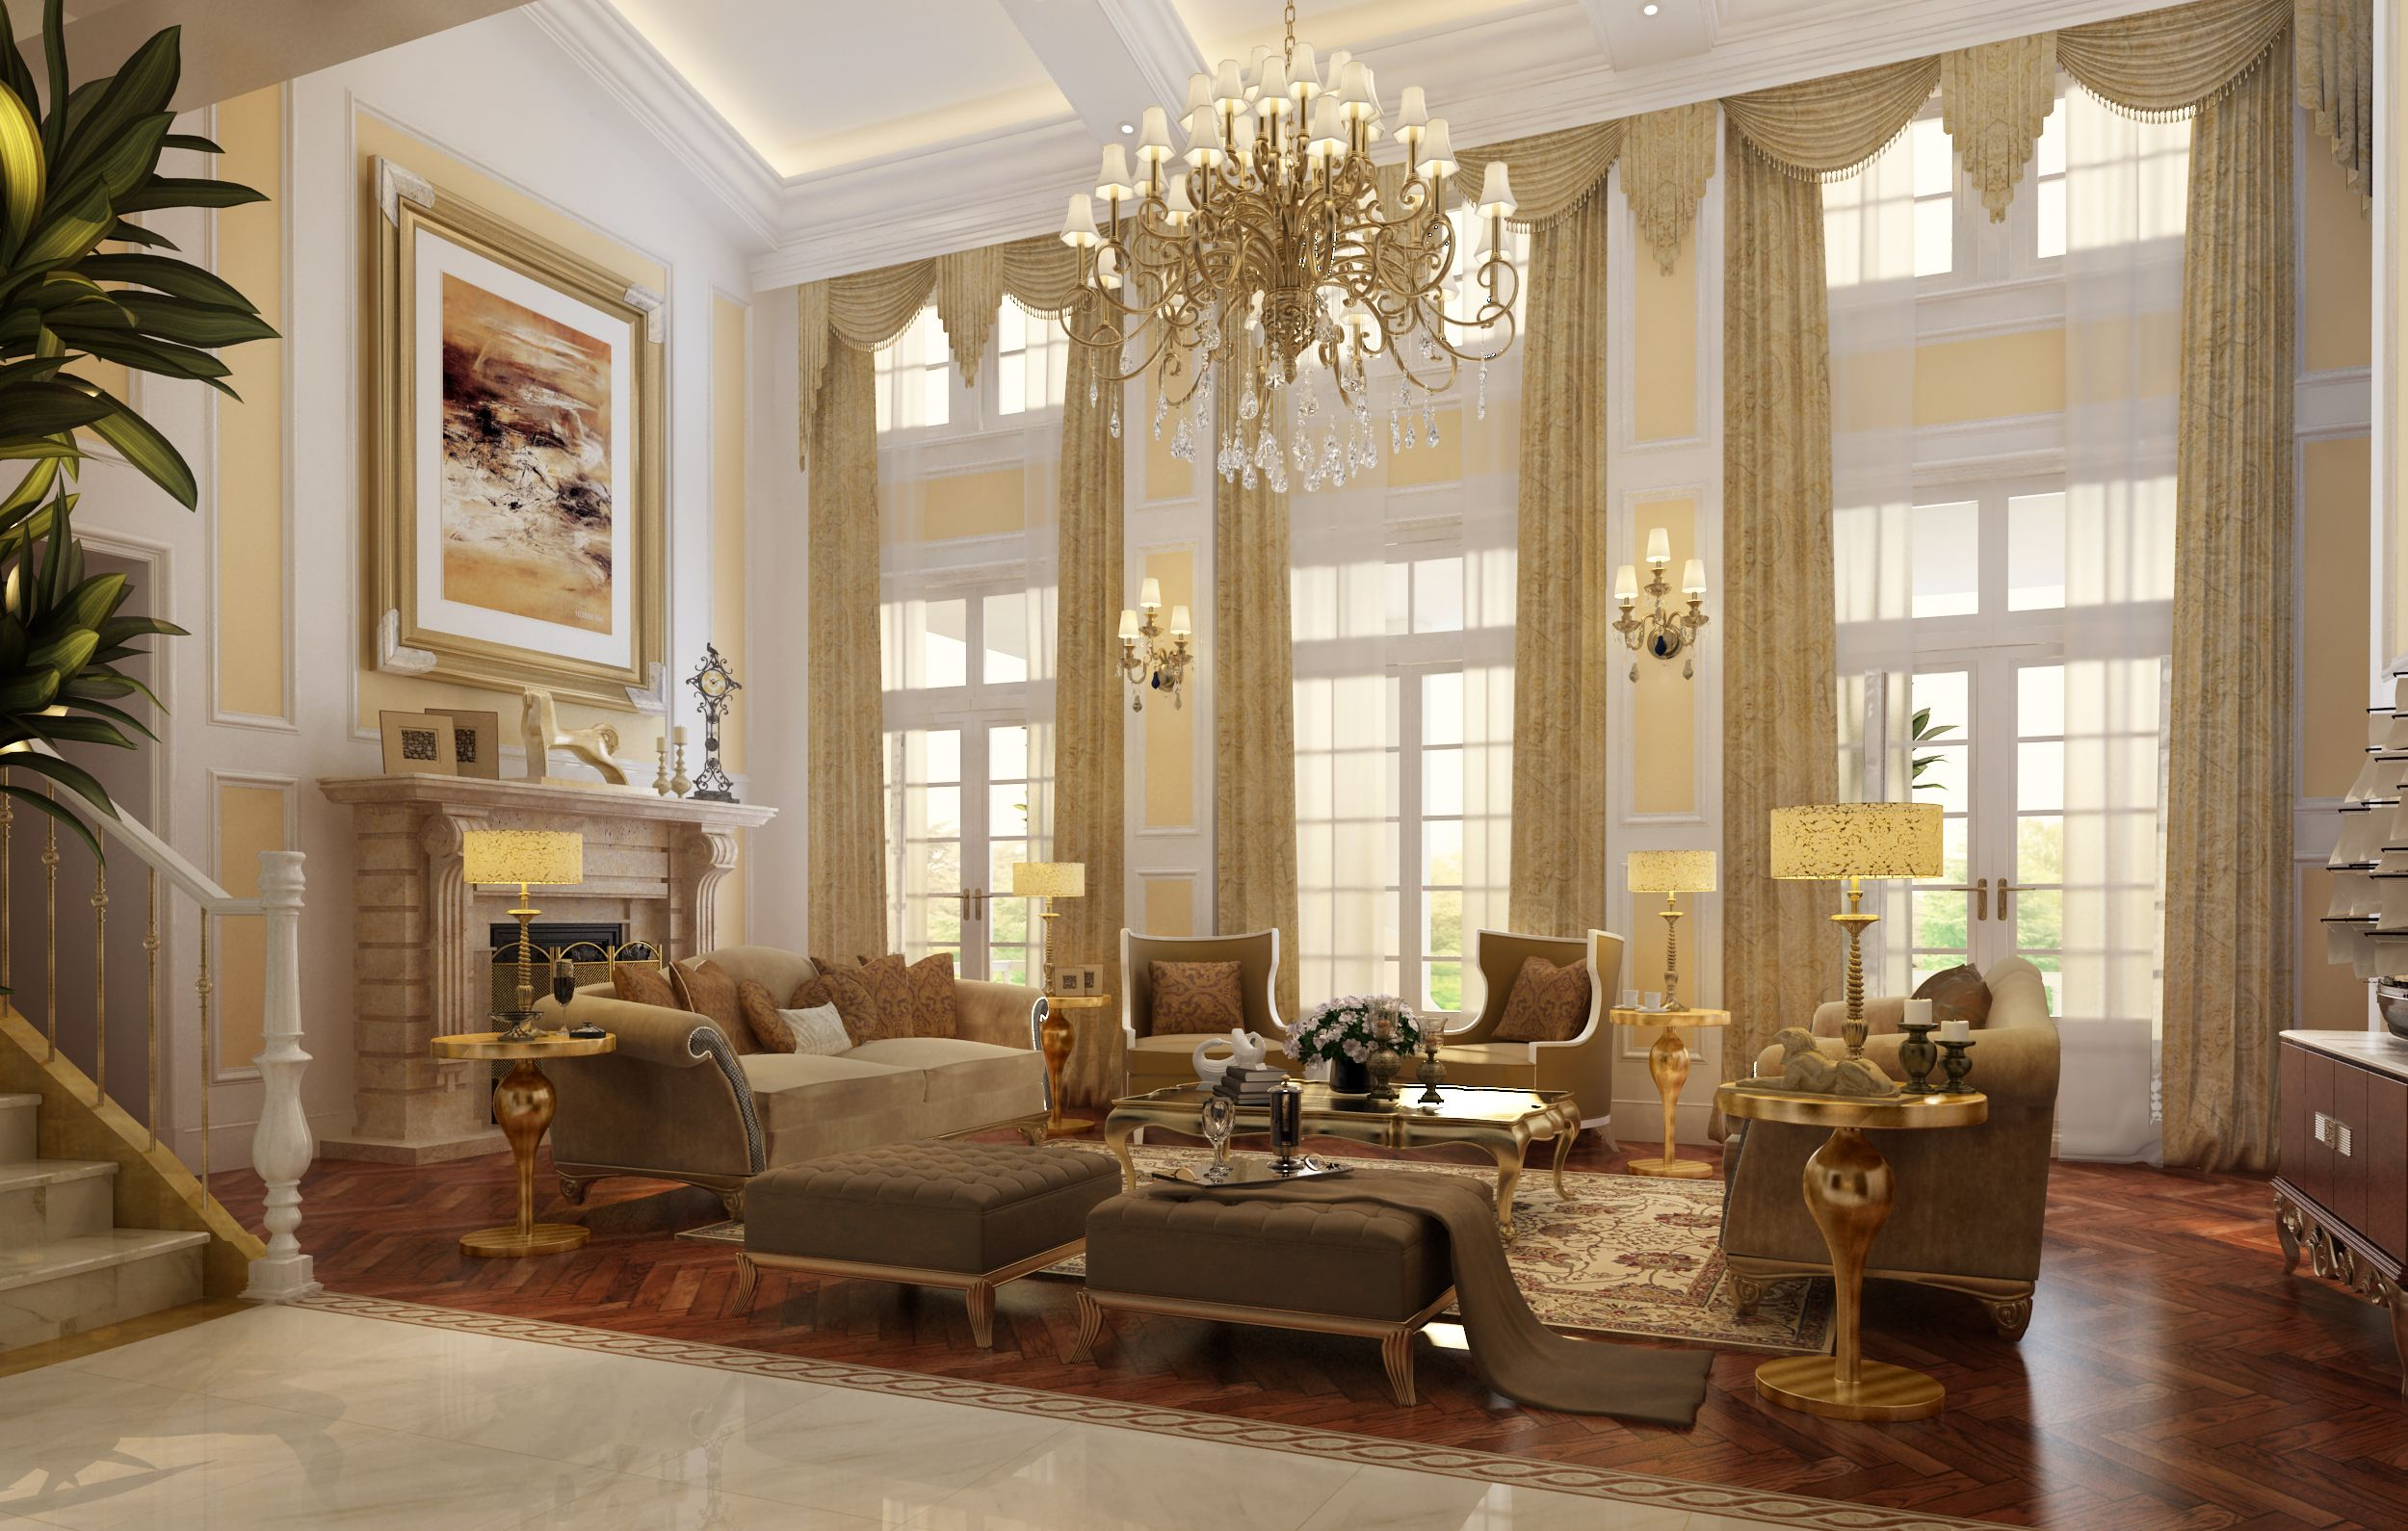 Luxury living room with firep 3D Model .max - CGTrader.com ...